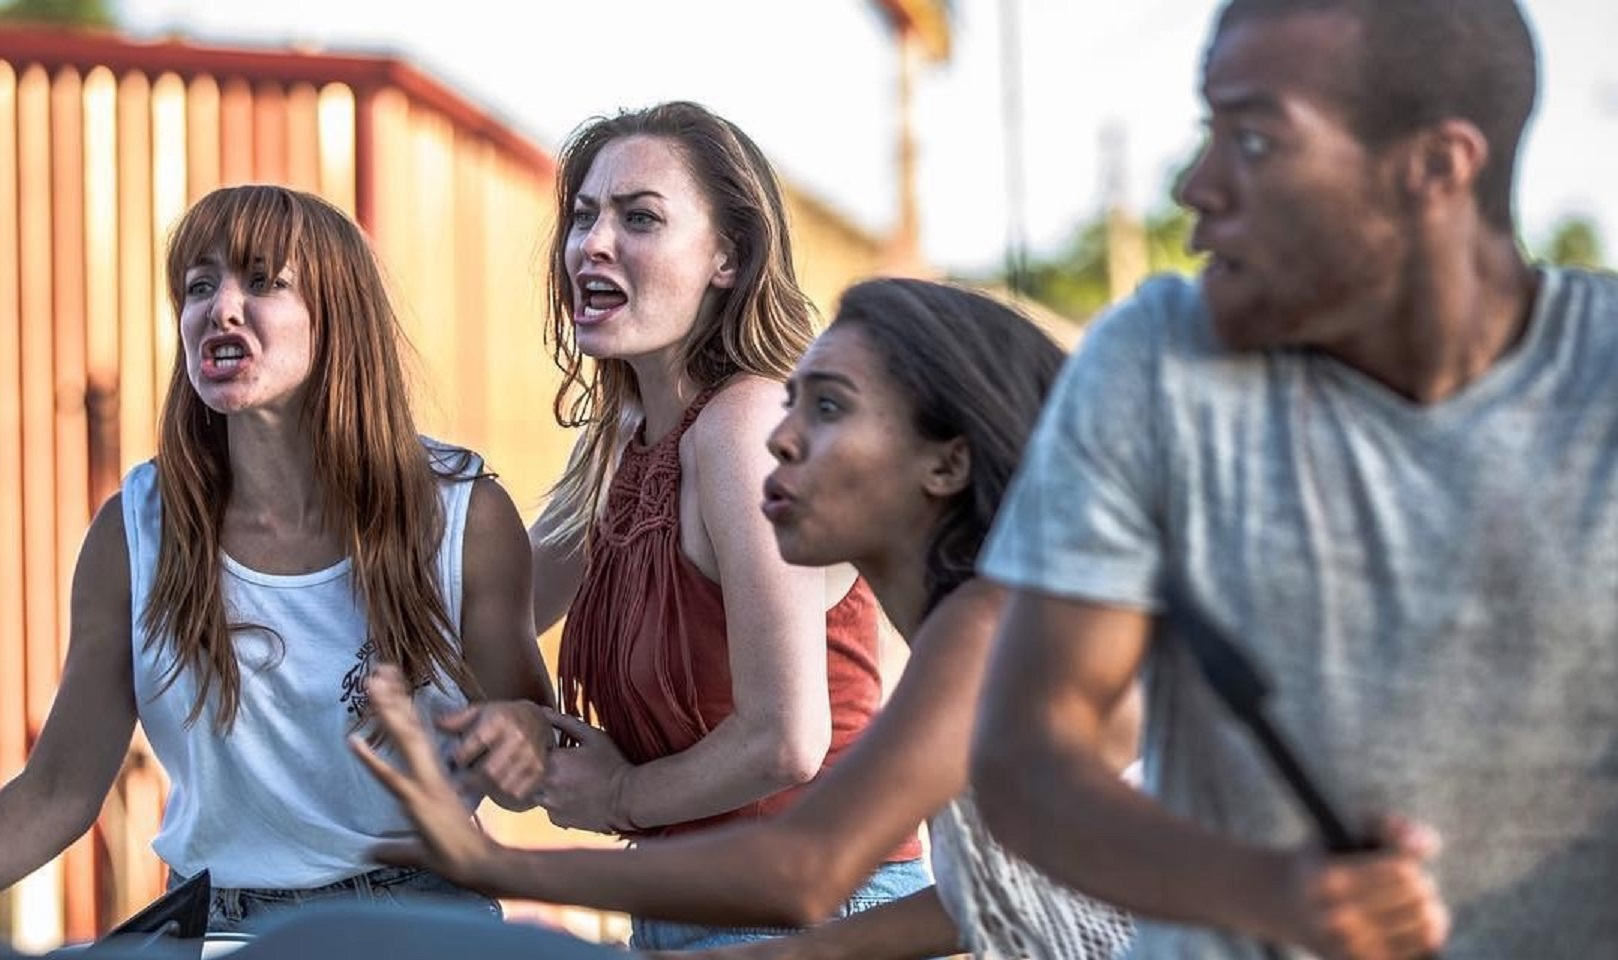 Kaitlin Mesh, Megan Few, Wyntergrace Williams and Moses J. Moseley in Attack of the Southern Fried Zombies (2017)